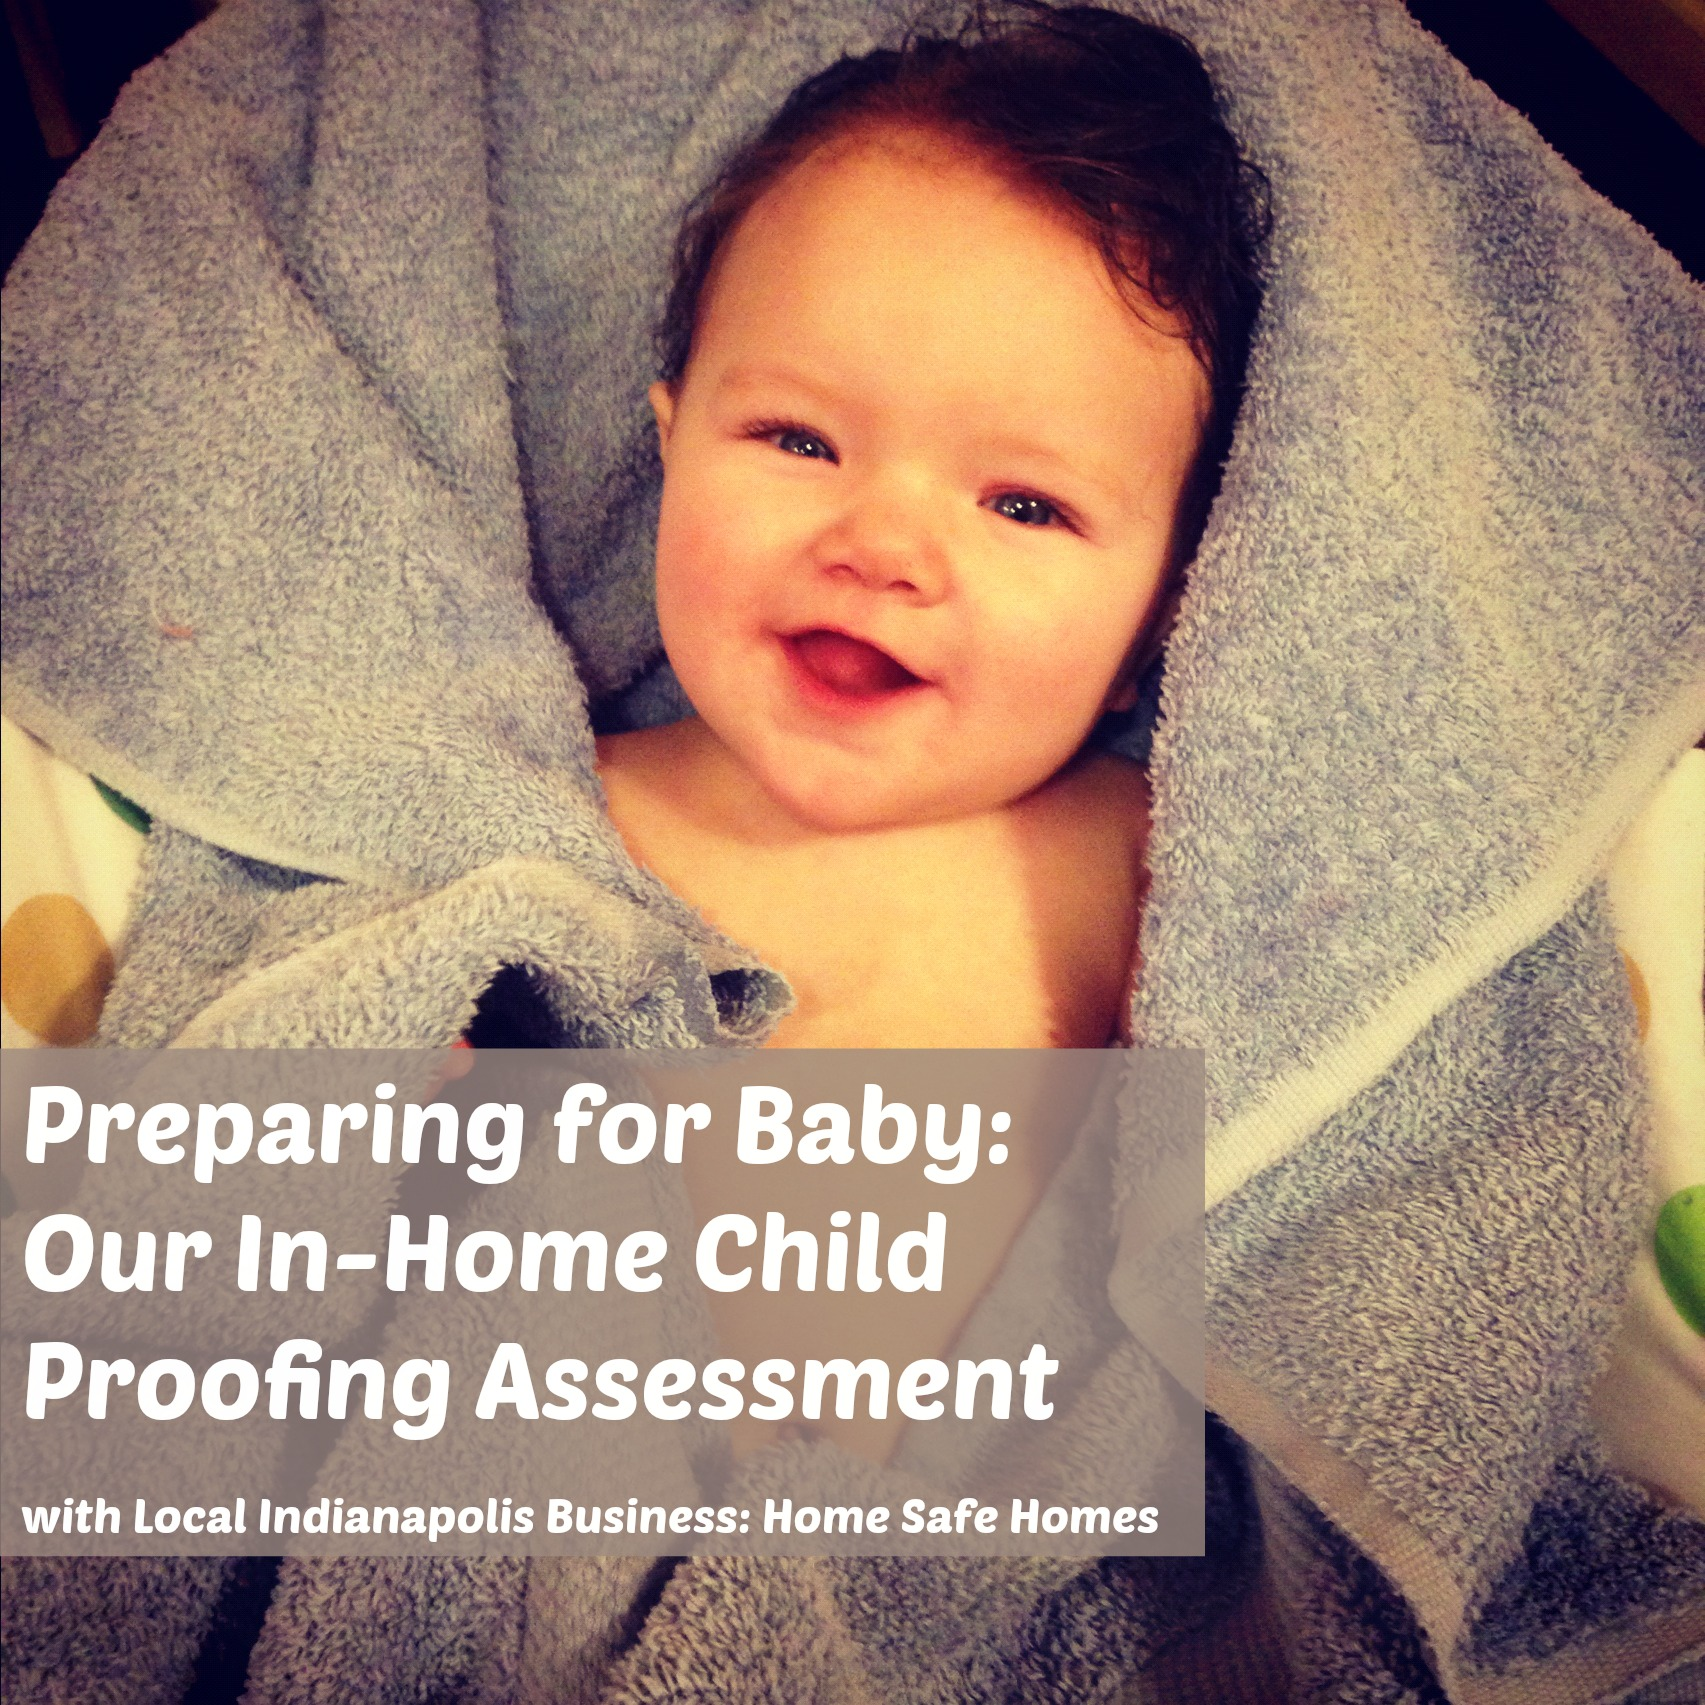 In-Home Baby Proofing Assessment: 5 Child Proofing Measures